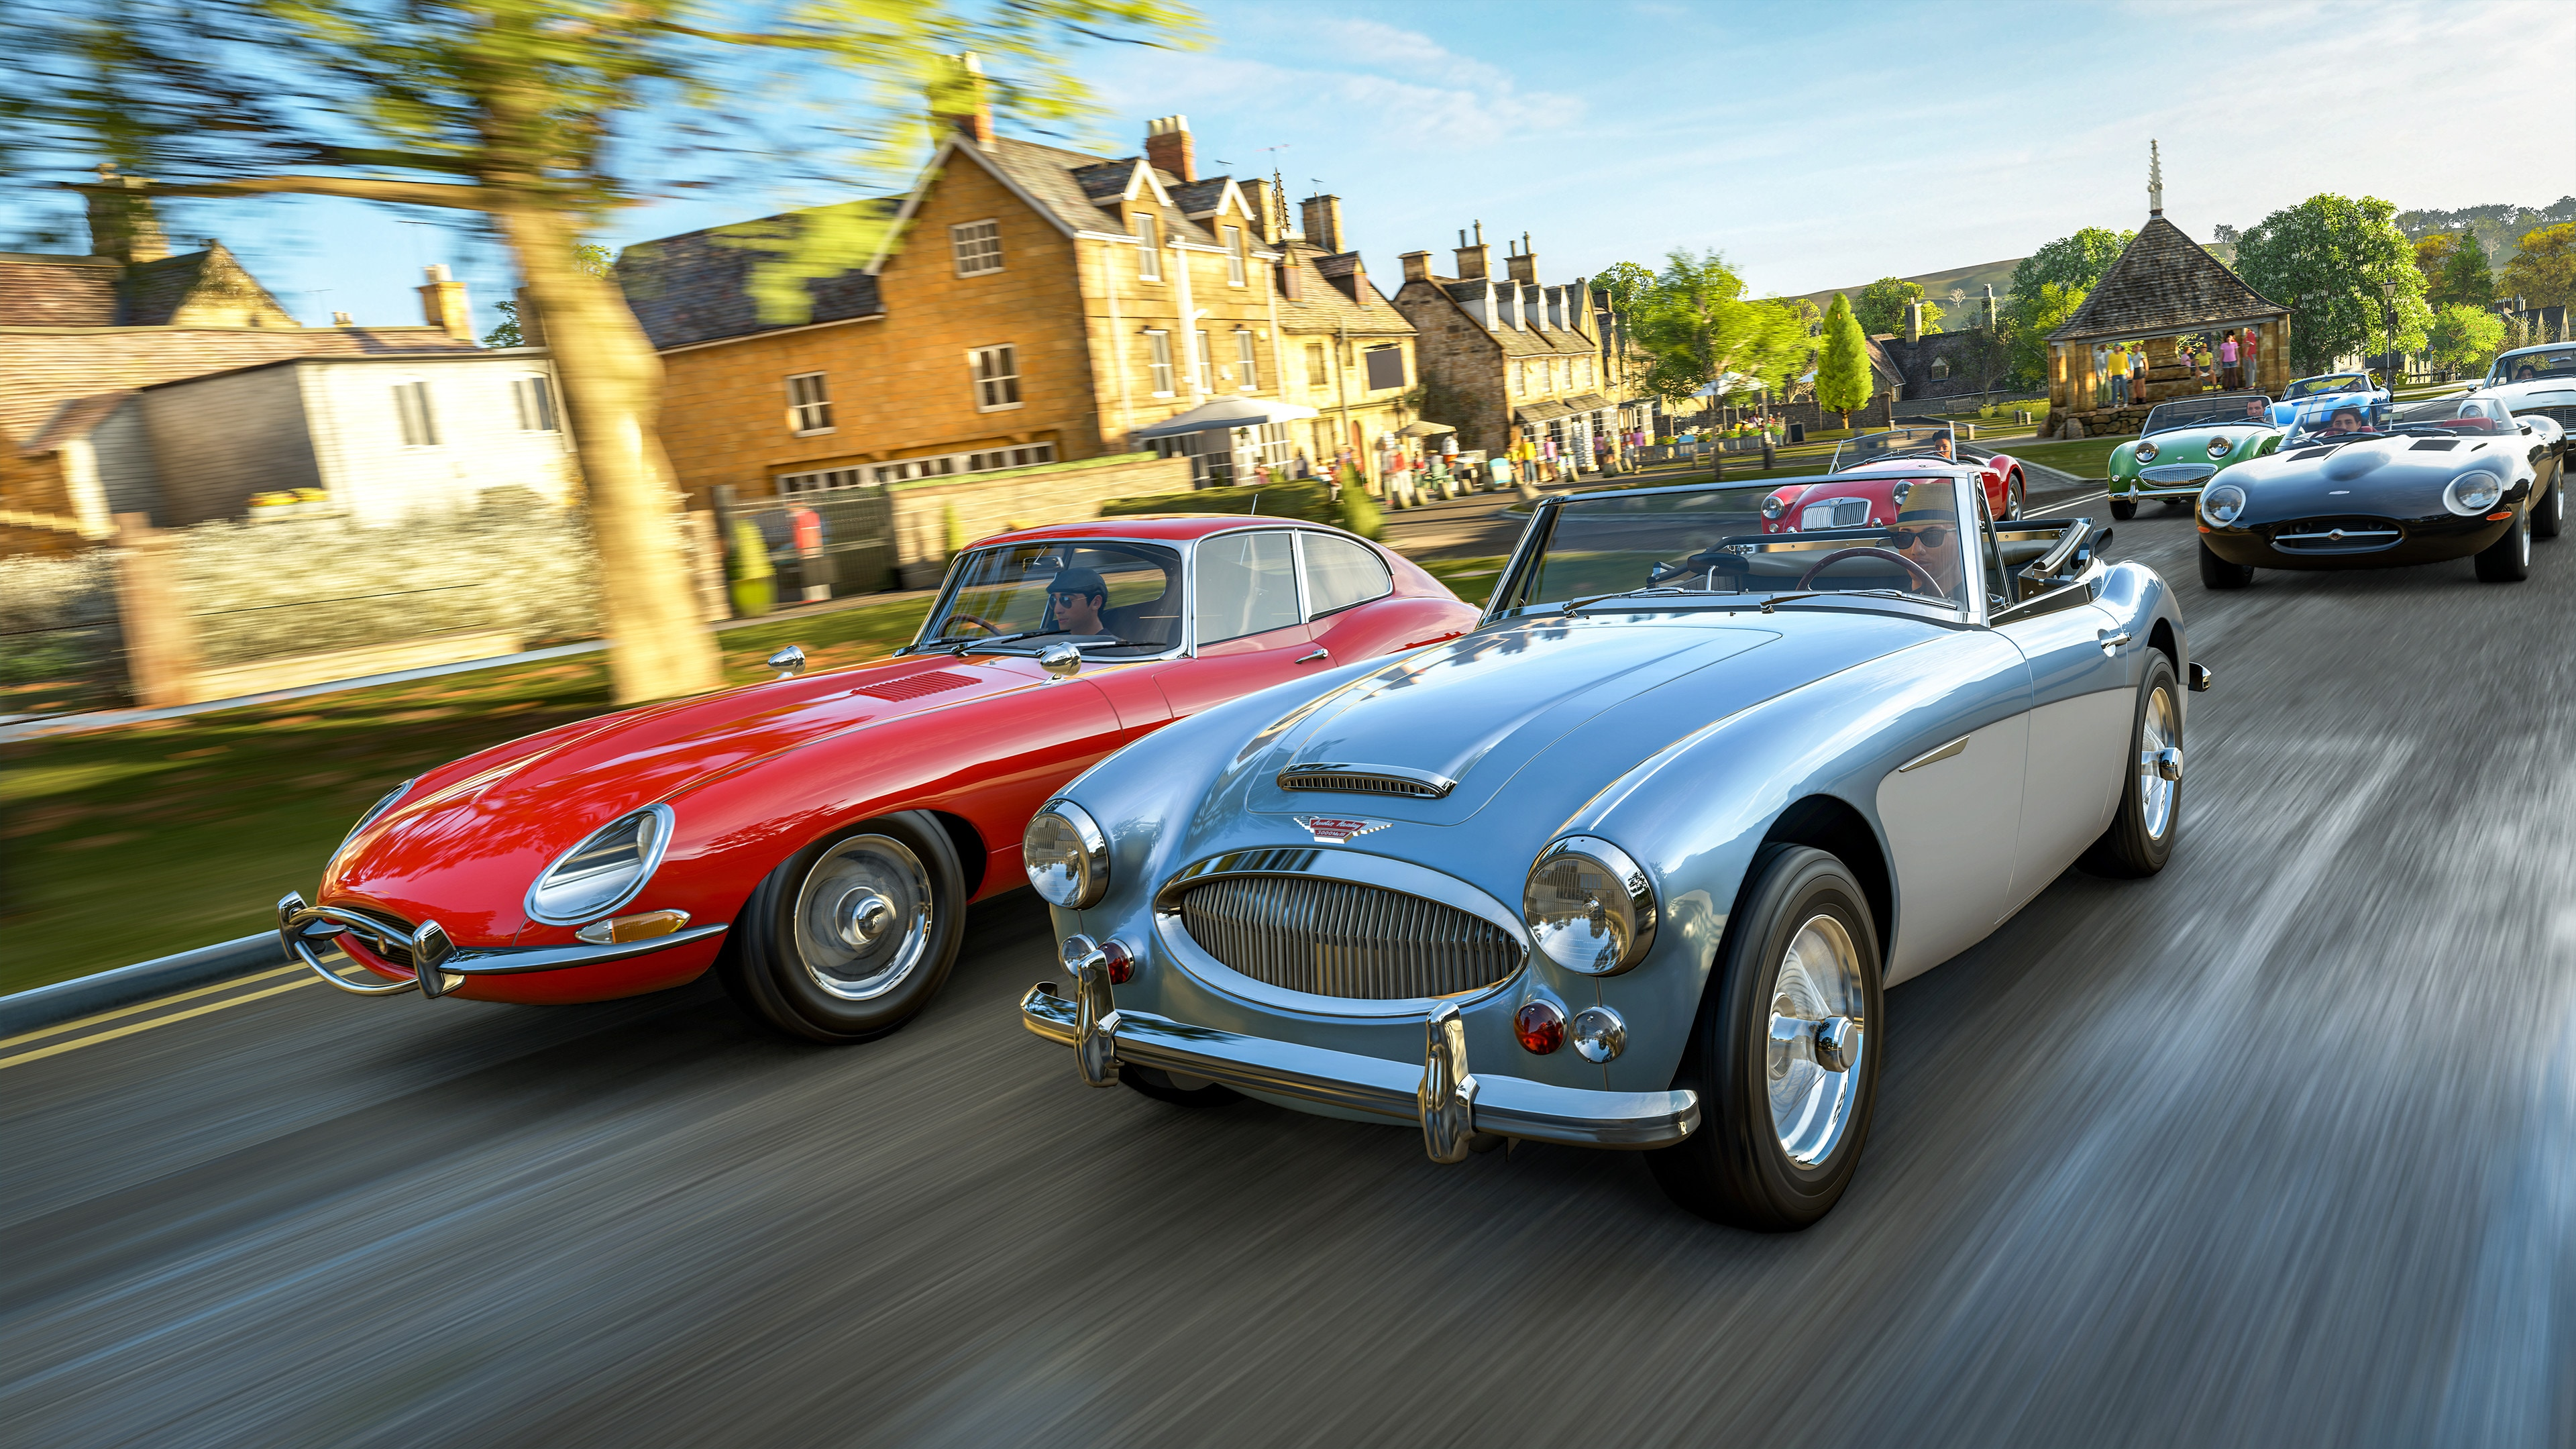 Forza Horizon 4 is selling for <span class='webrupee'>₹</span>649 down from <span class='webrupee'>₹</span>1,299